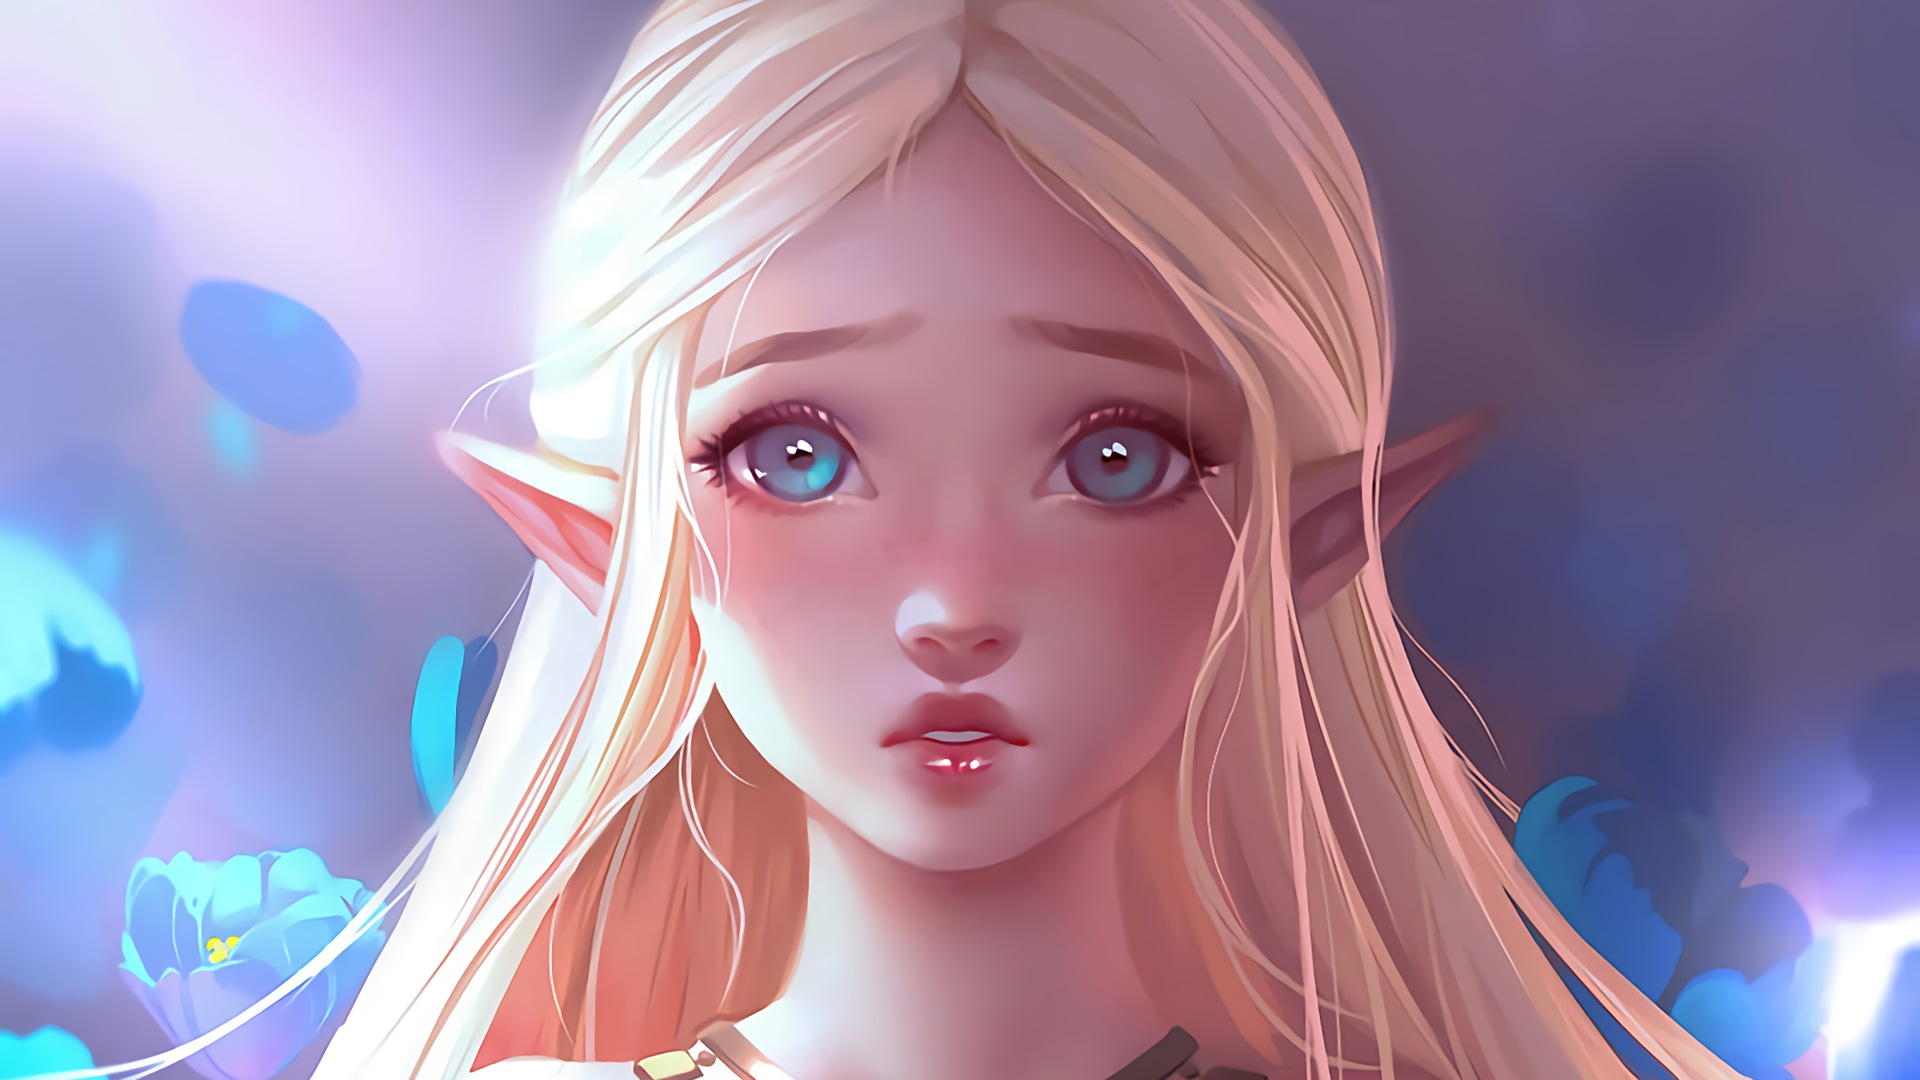 Princess Zelda The Legend of Zelda 7 Wallpapers 1920x1080